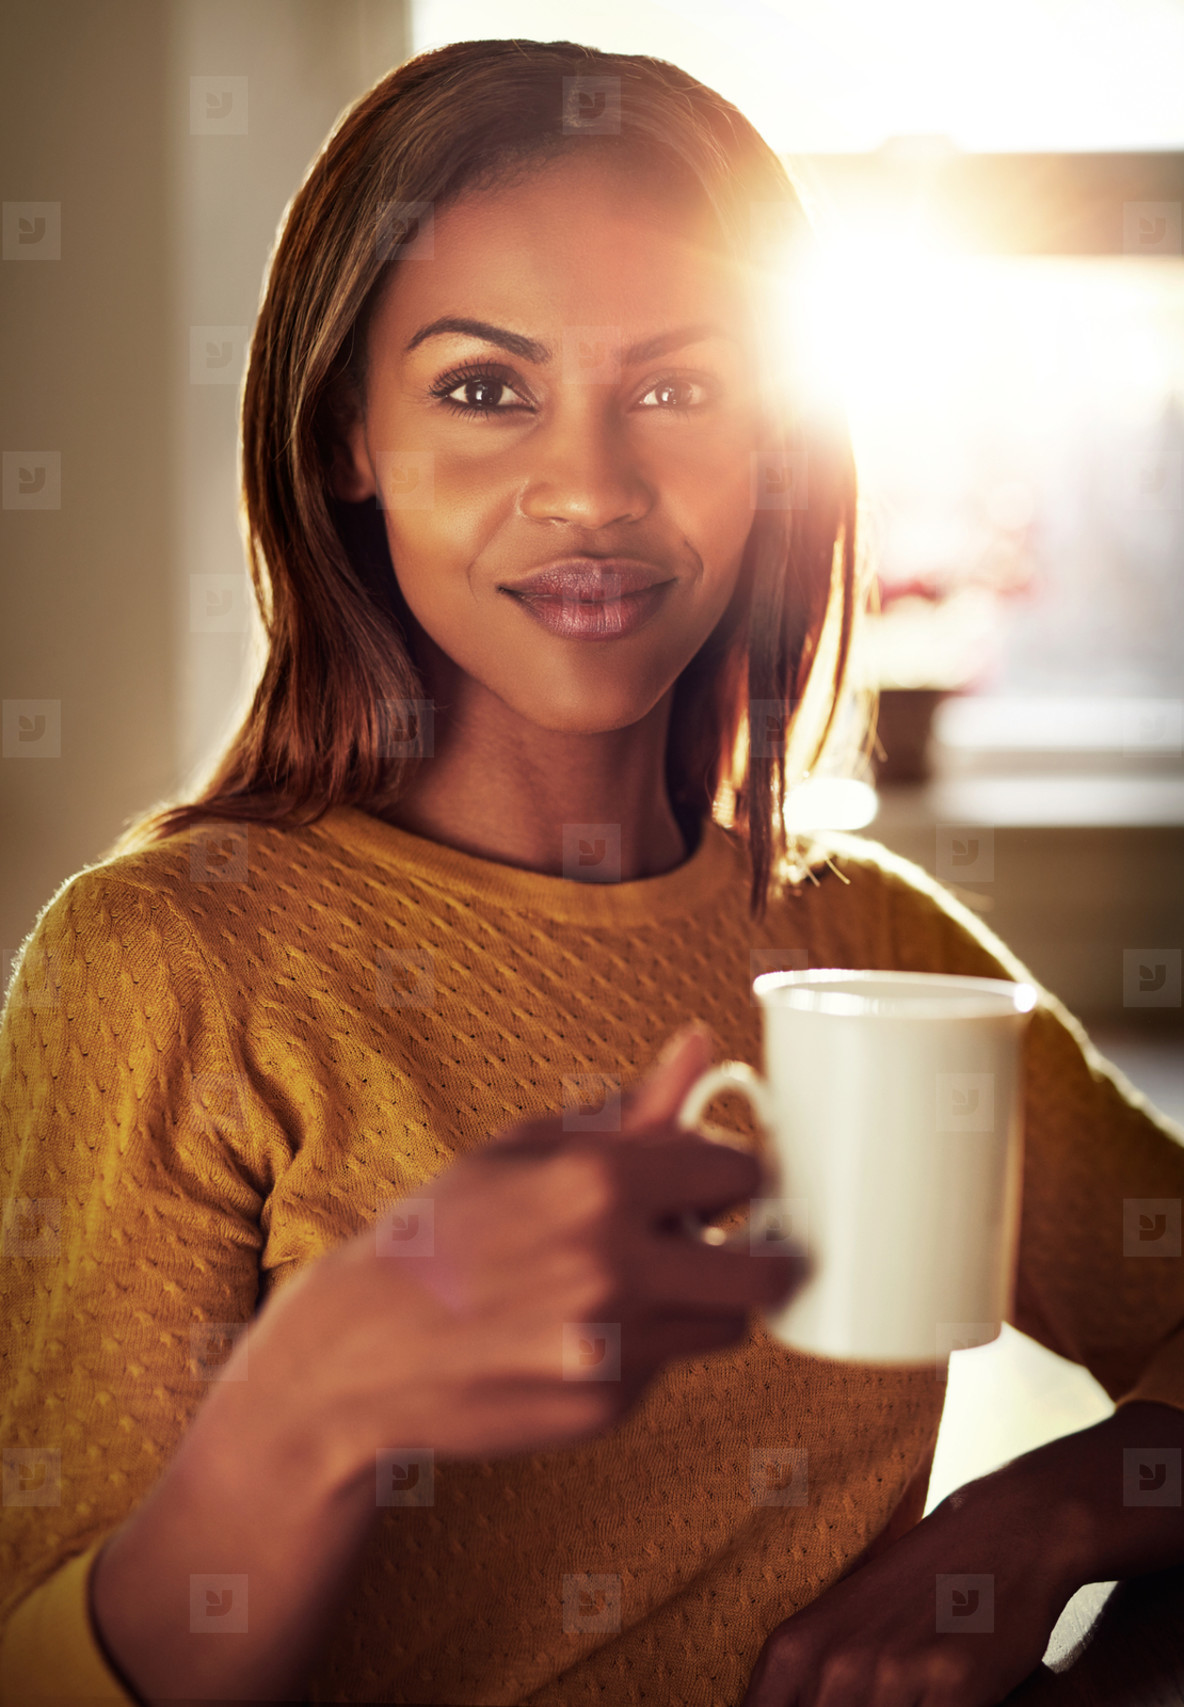 Attractive young woman enjoying a cup of coffee